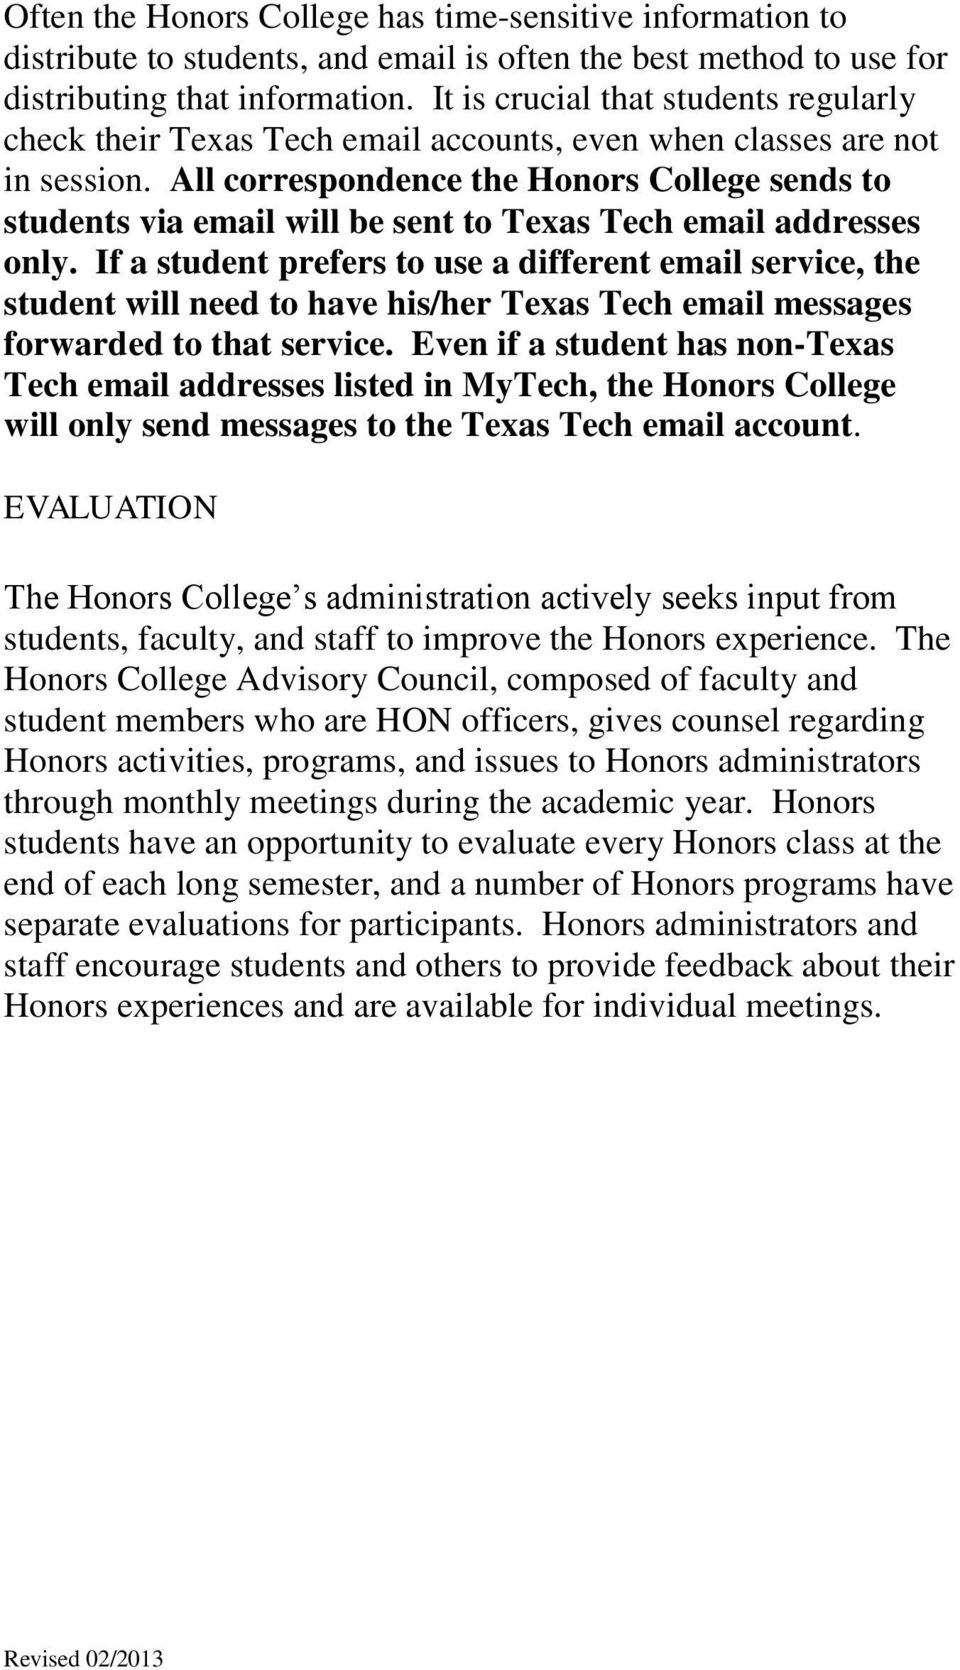 All correspondence the Honors College sends to students via email will be sent to Texas Tech email addresses only.